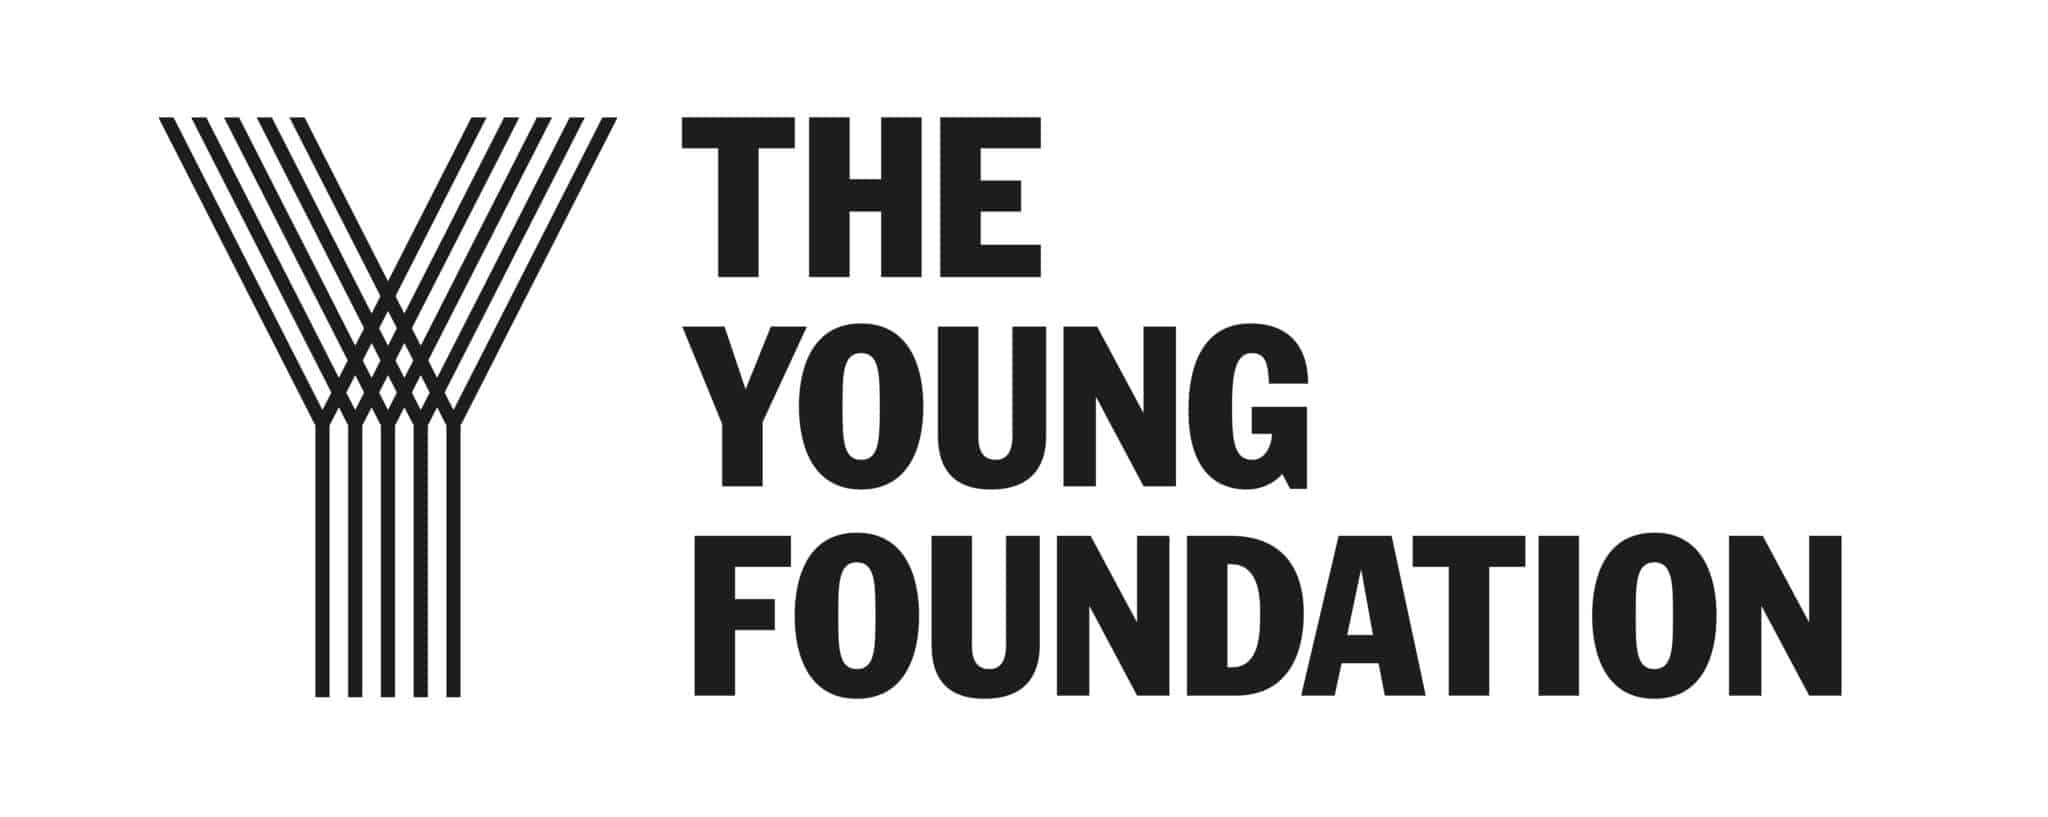 Brief: The Young Foundation Announces Live Crowdfunding